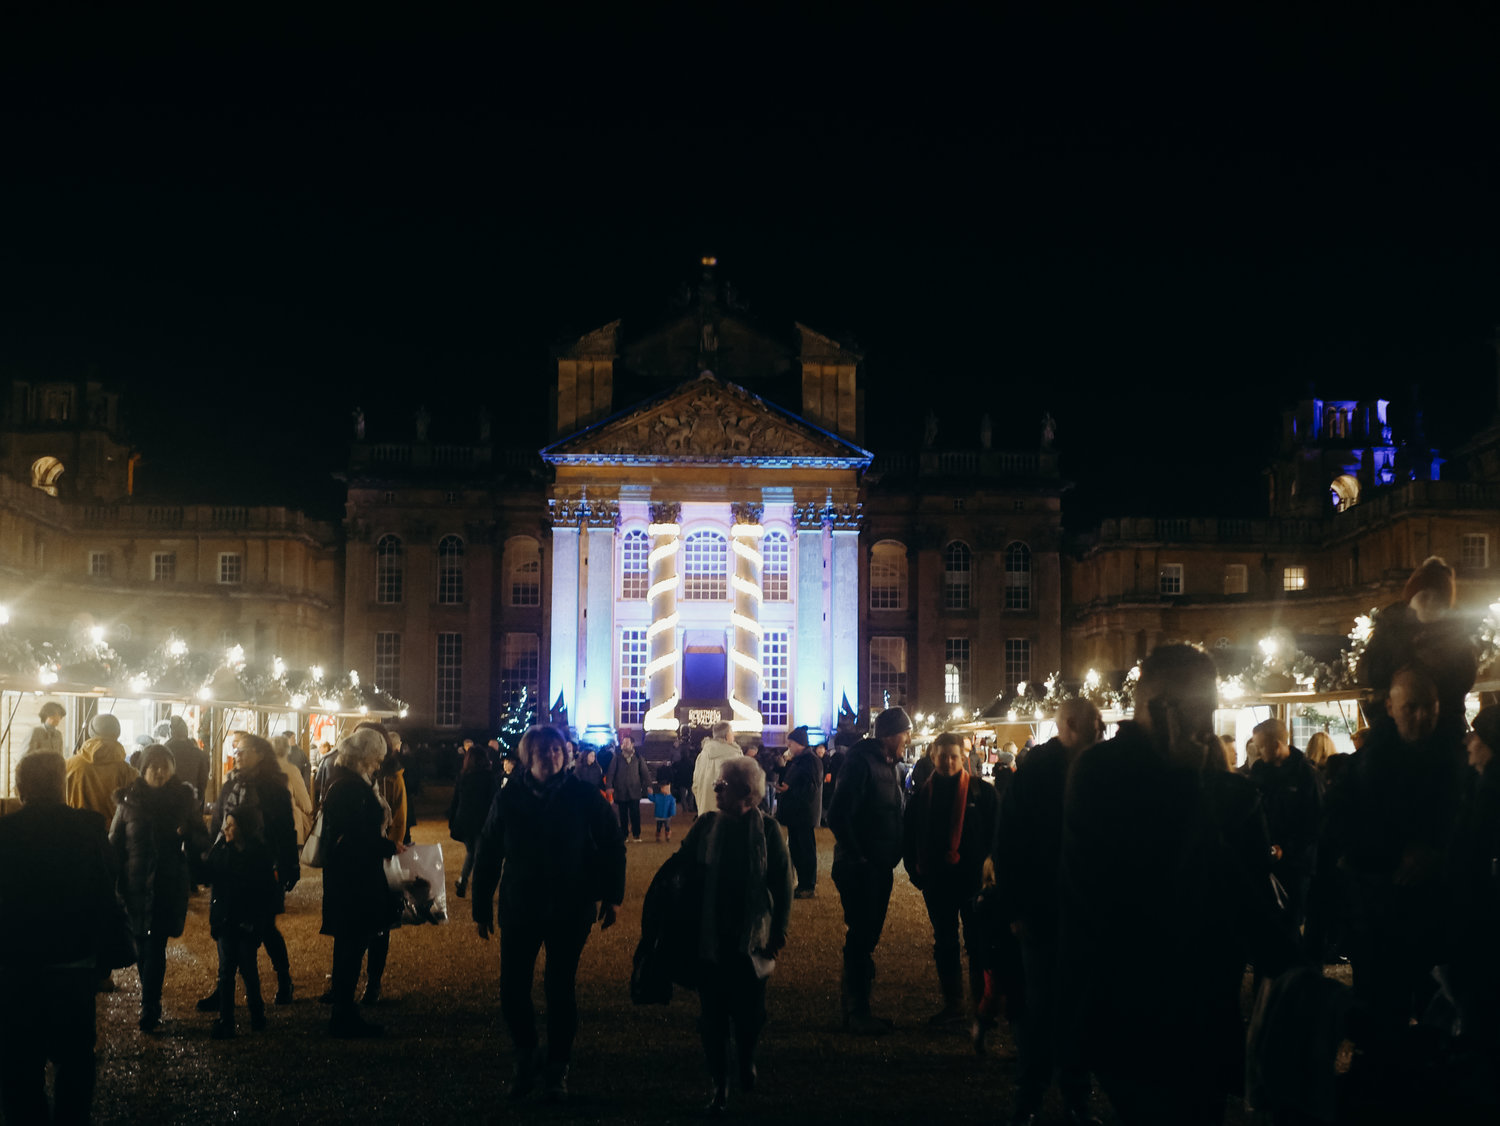 Christmas Bucket List - Visit the Christmas Market, Blenheim Palace